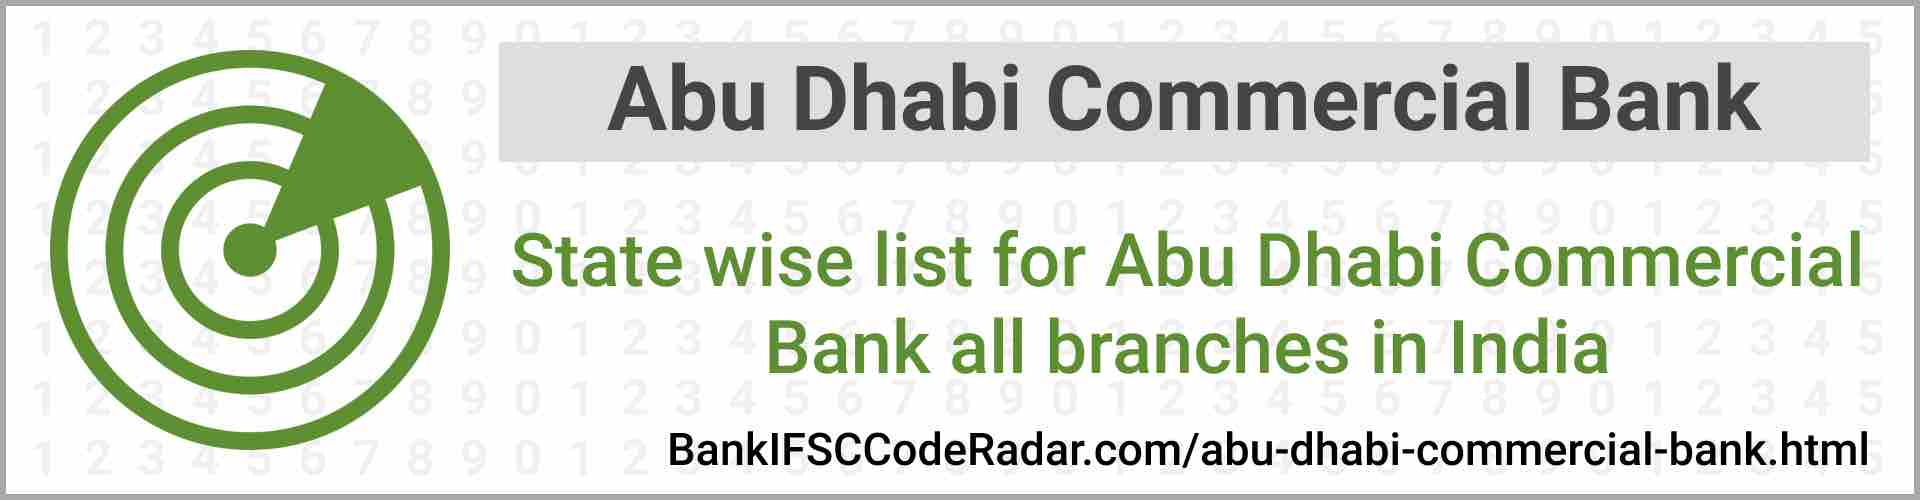 Abu Dhabi Commercial Bank All Branches India